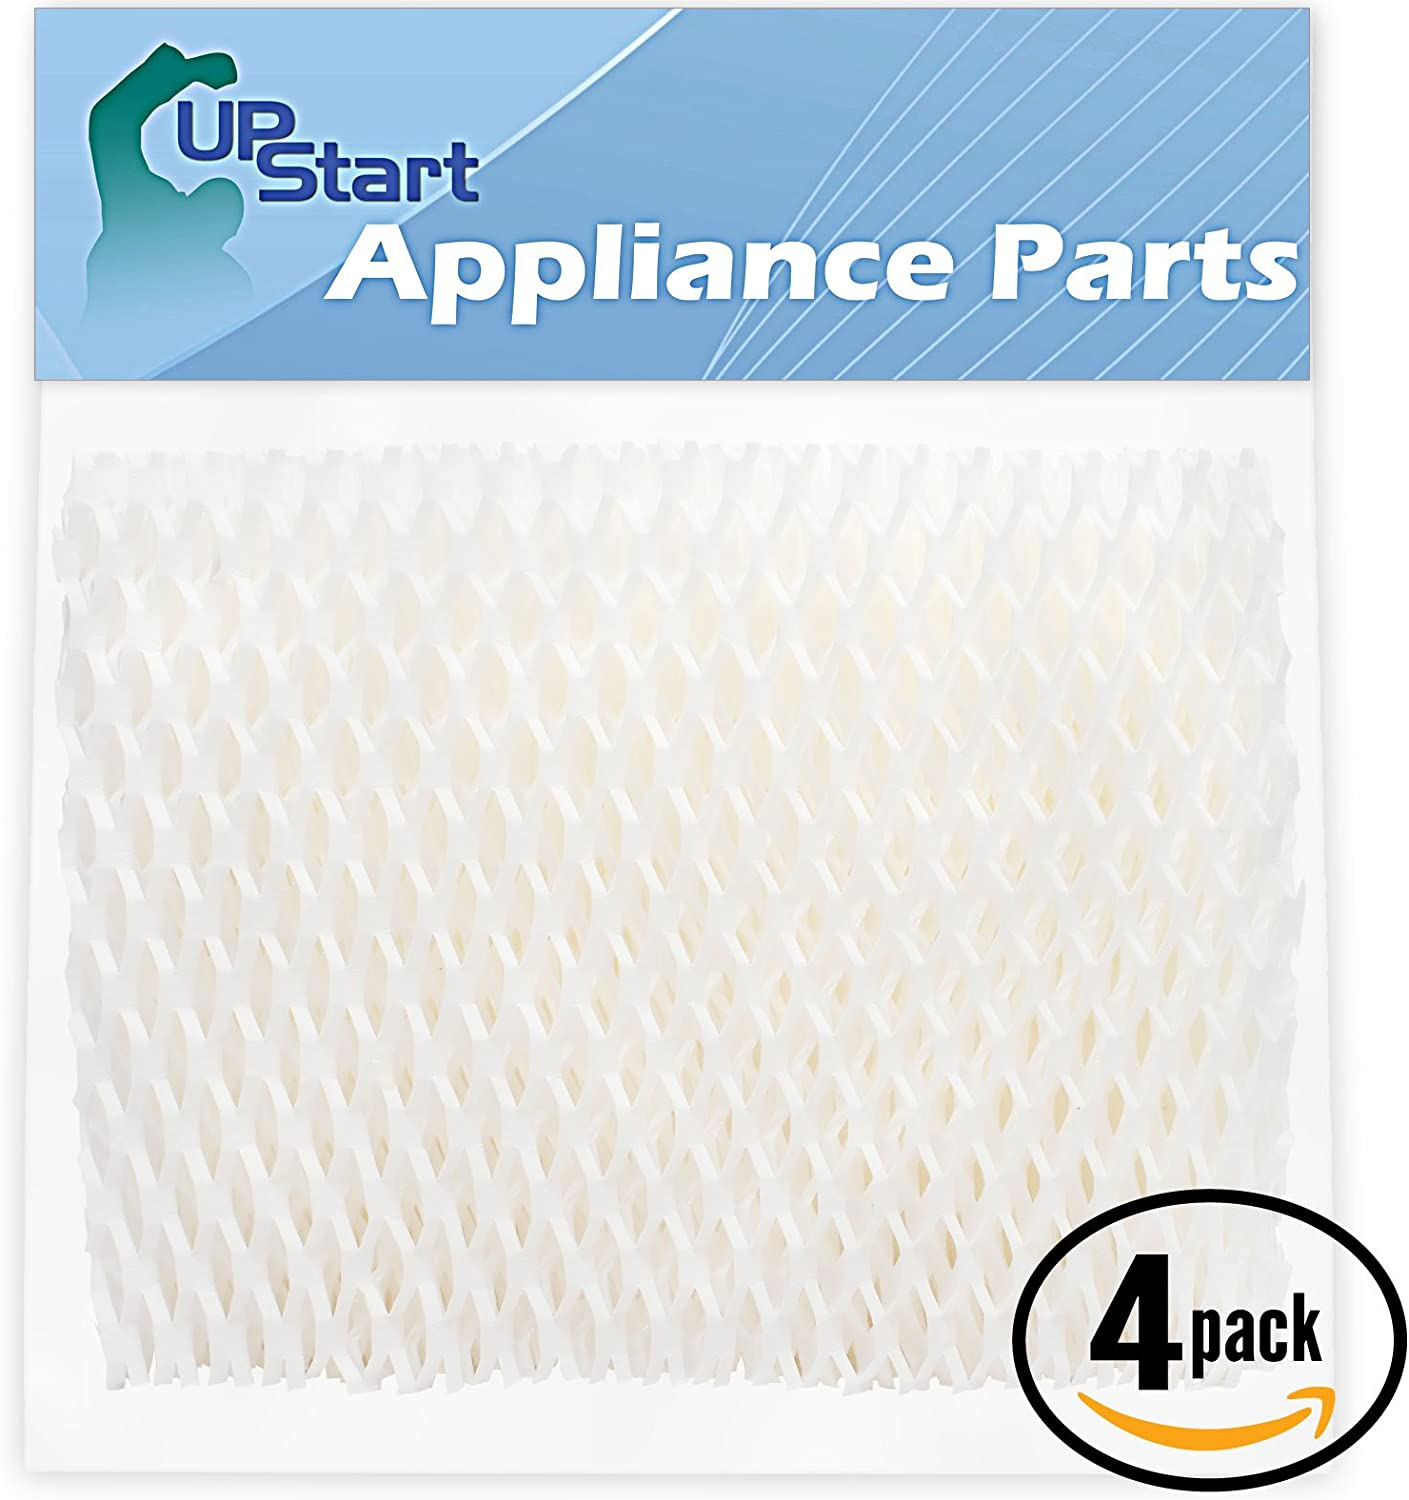 Upstart Battery 4-Pack Replacement 2H00 Humidifier Filter for 1.5 Gallon Graco TrueAir - Compatible with Graco Cool Mist Humidifier, Graco 2H00, Graco 2H01, TrueAir 05510, Graco 2H001